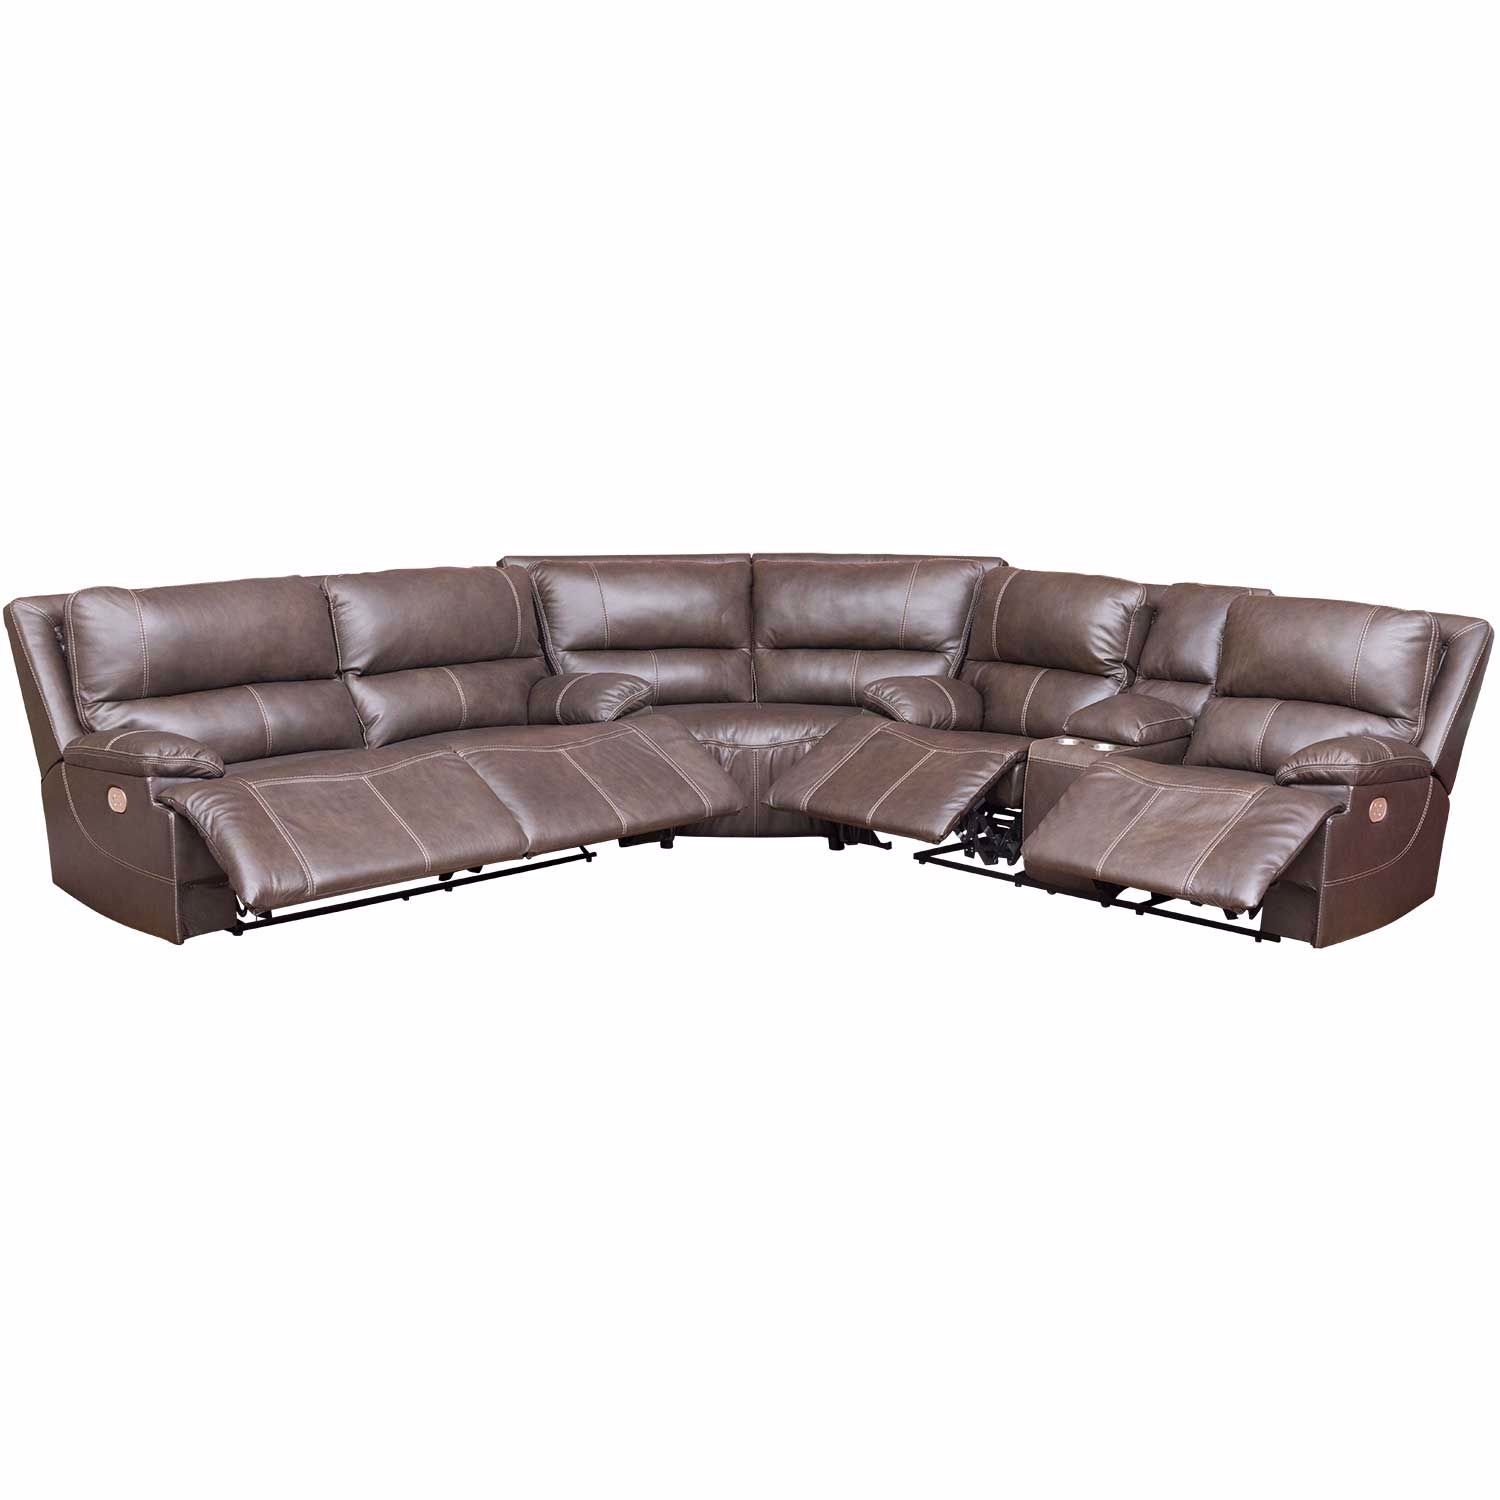 Pleasant Ricmen Walnut 3 Piece Italian Leather Power Reclining Sectional With Adjustable Headrest Ocoug Best Dining Table And Chair Ideas Images Ocougorg